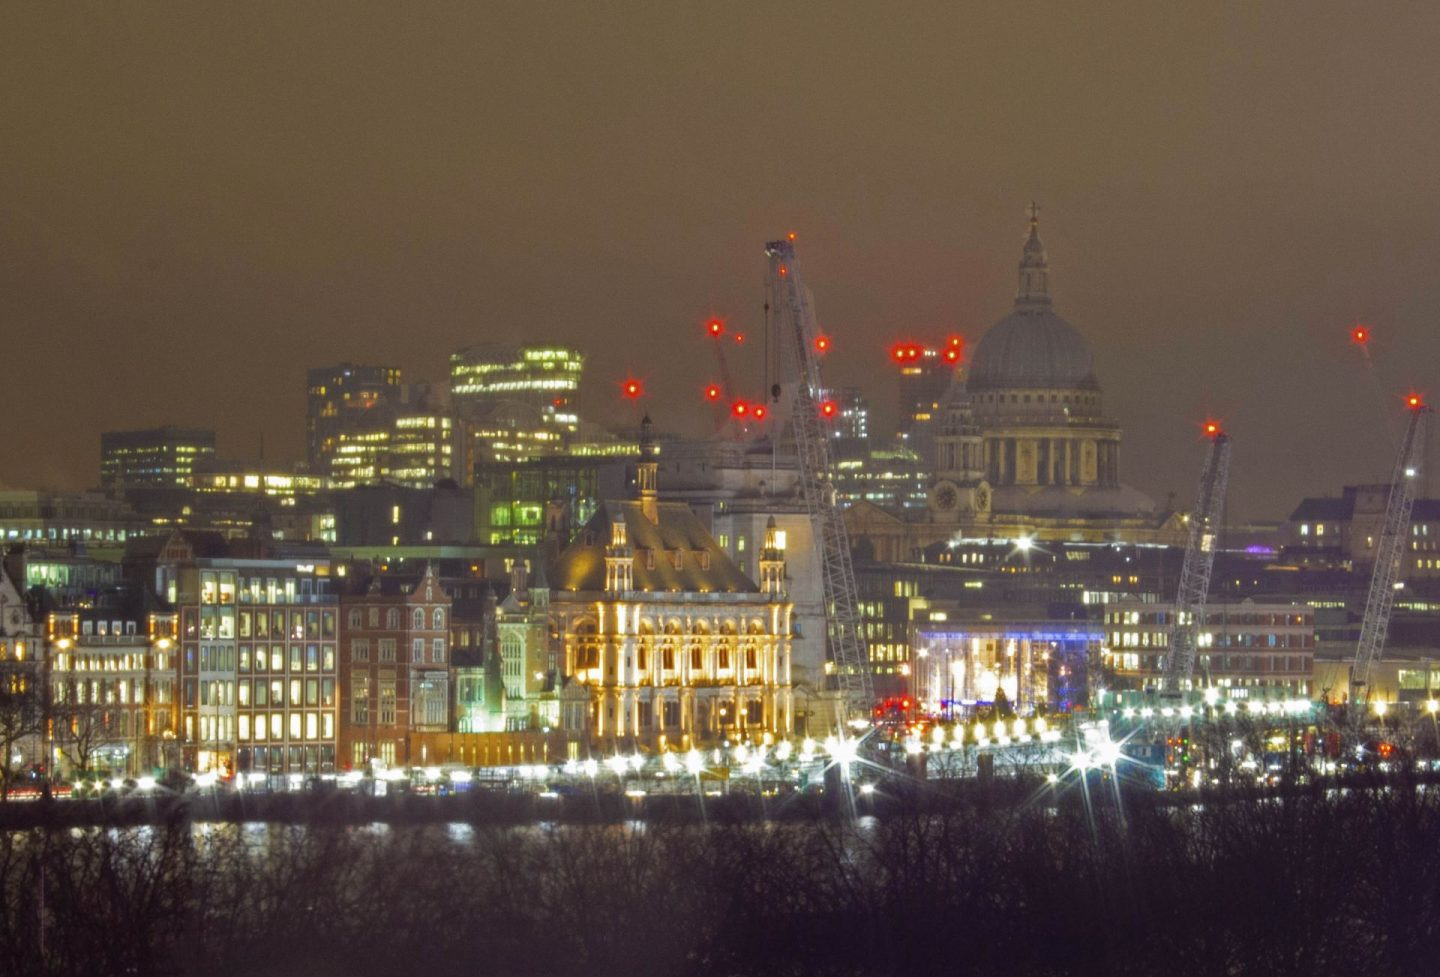 Last Normal photo, Photograph taken from National Theatre in London